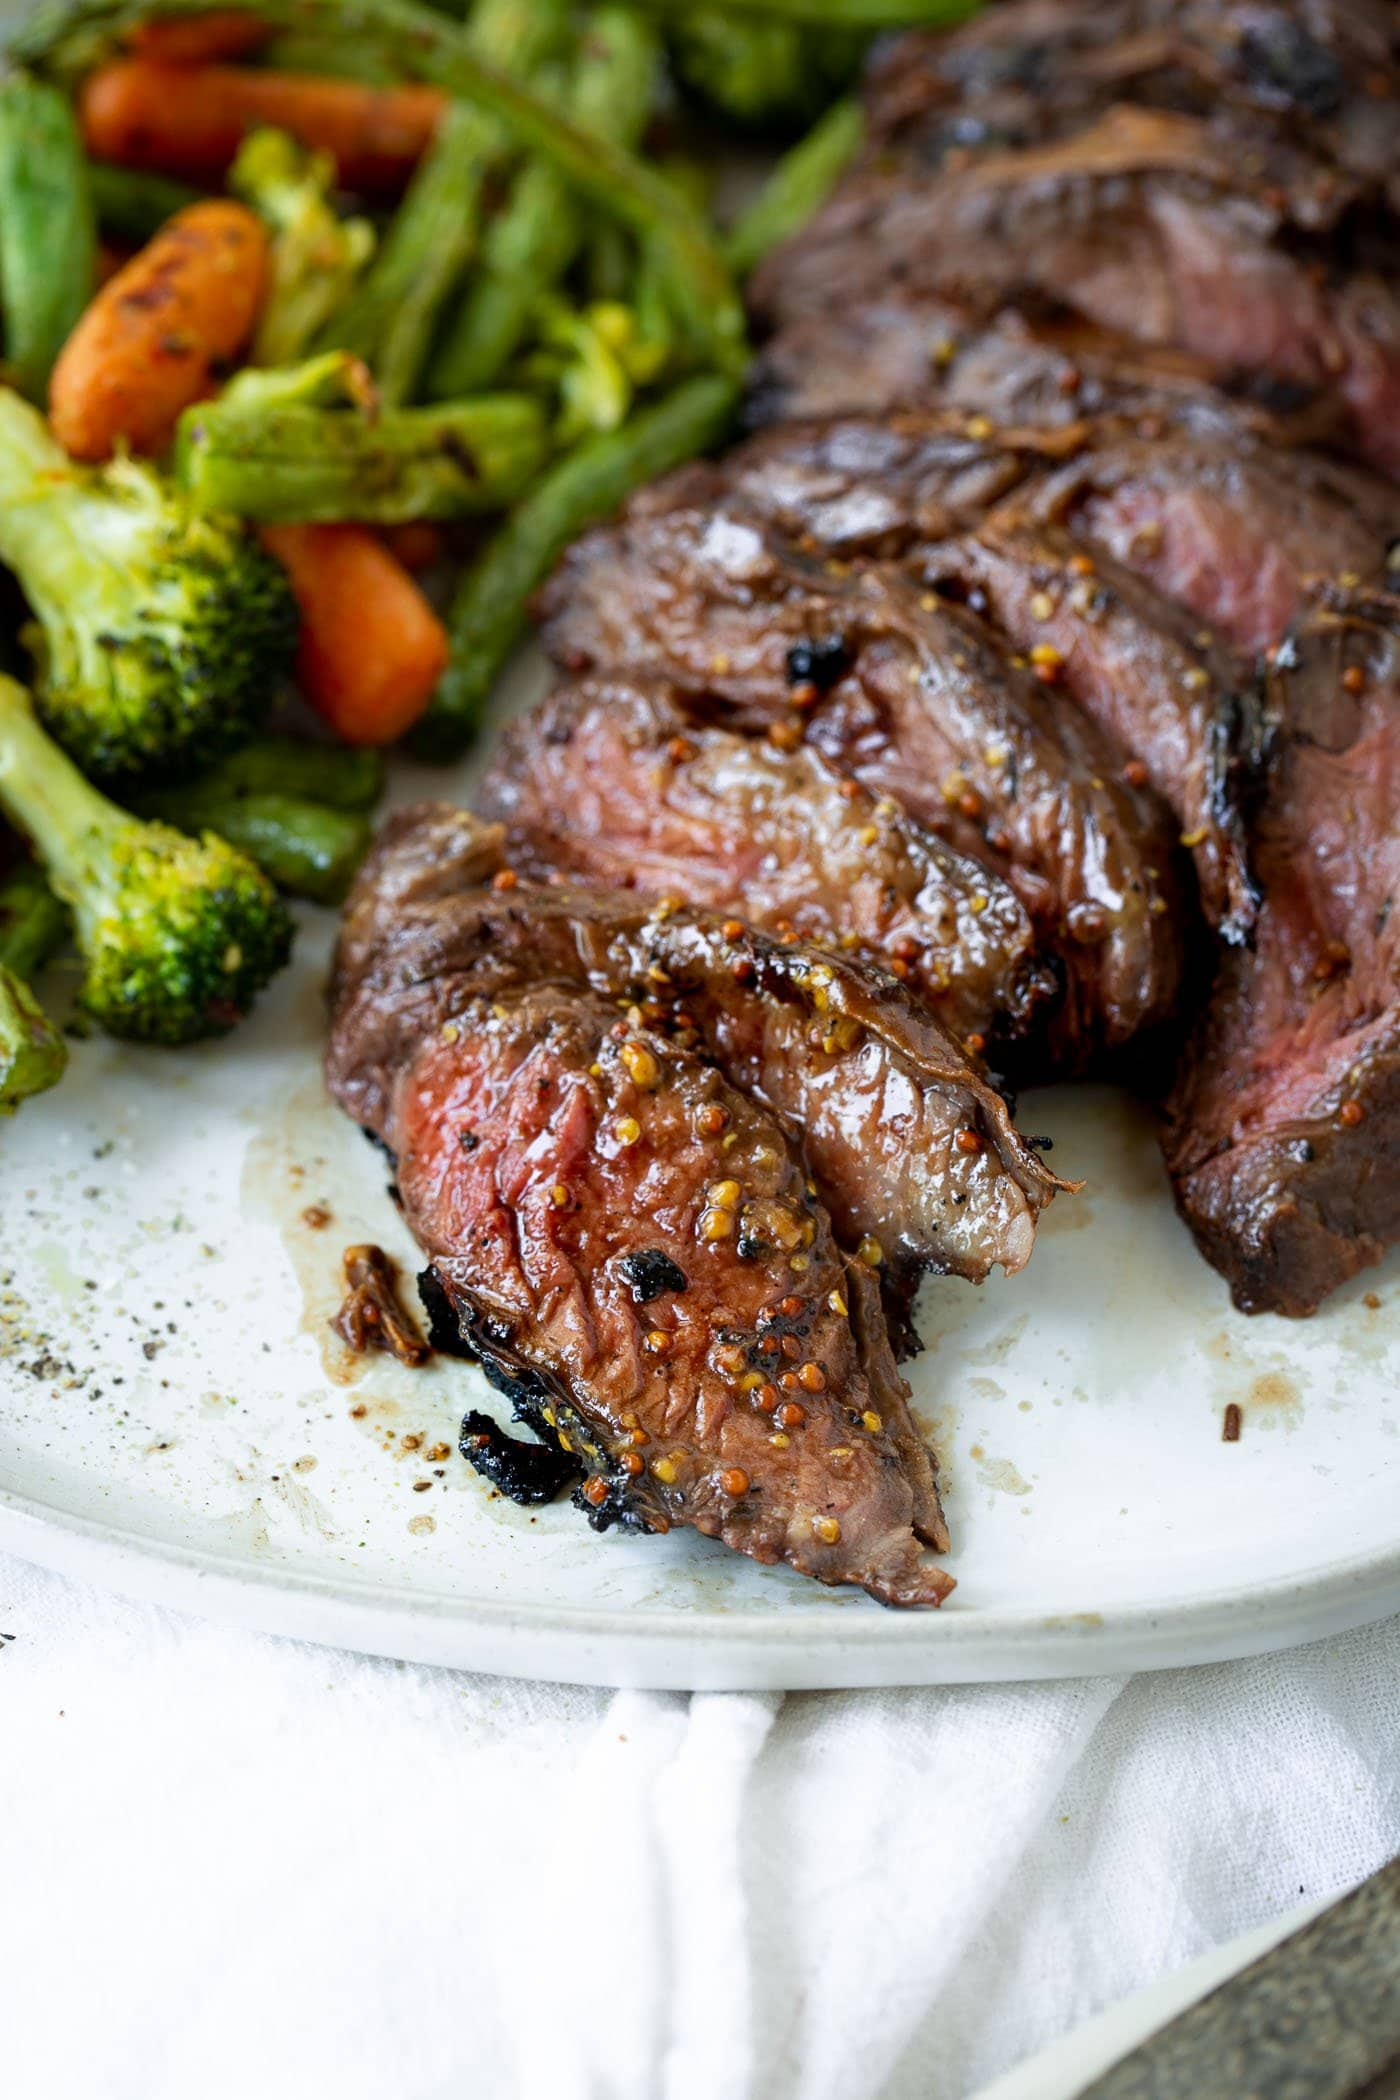 A close up photo of sliced medium rare hanger steak on a white plate next to some roasted vegetables.